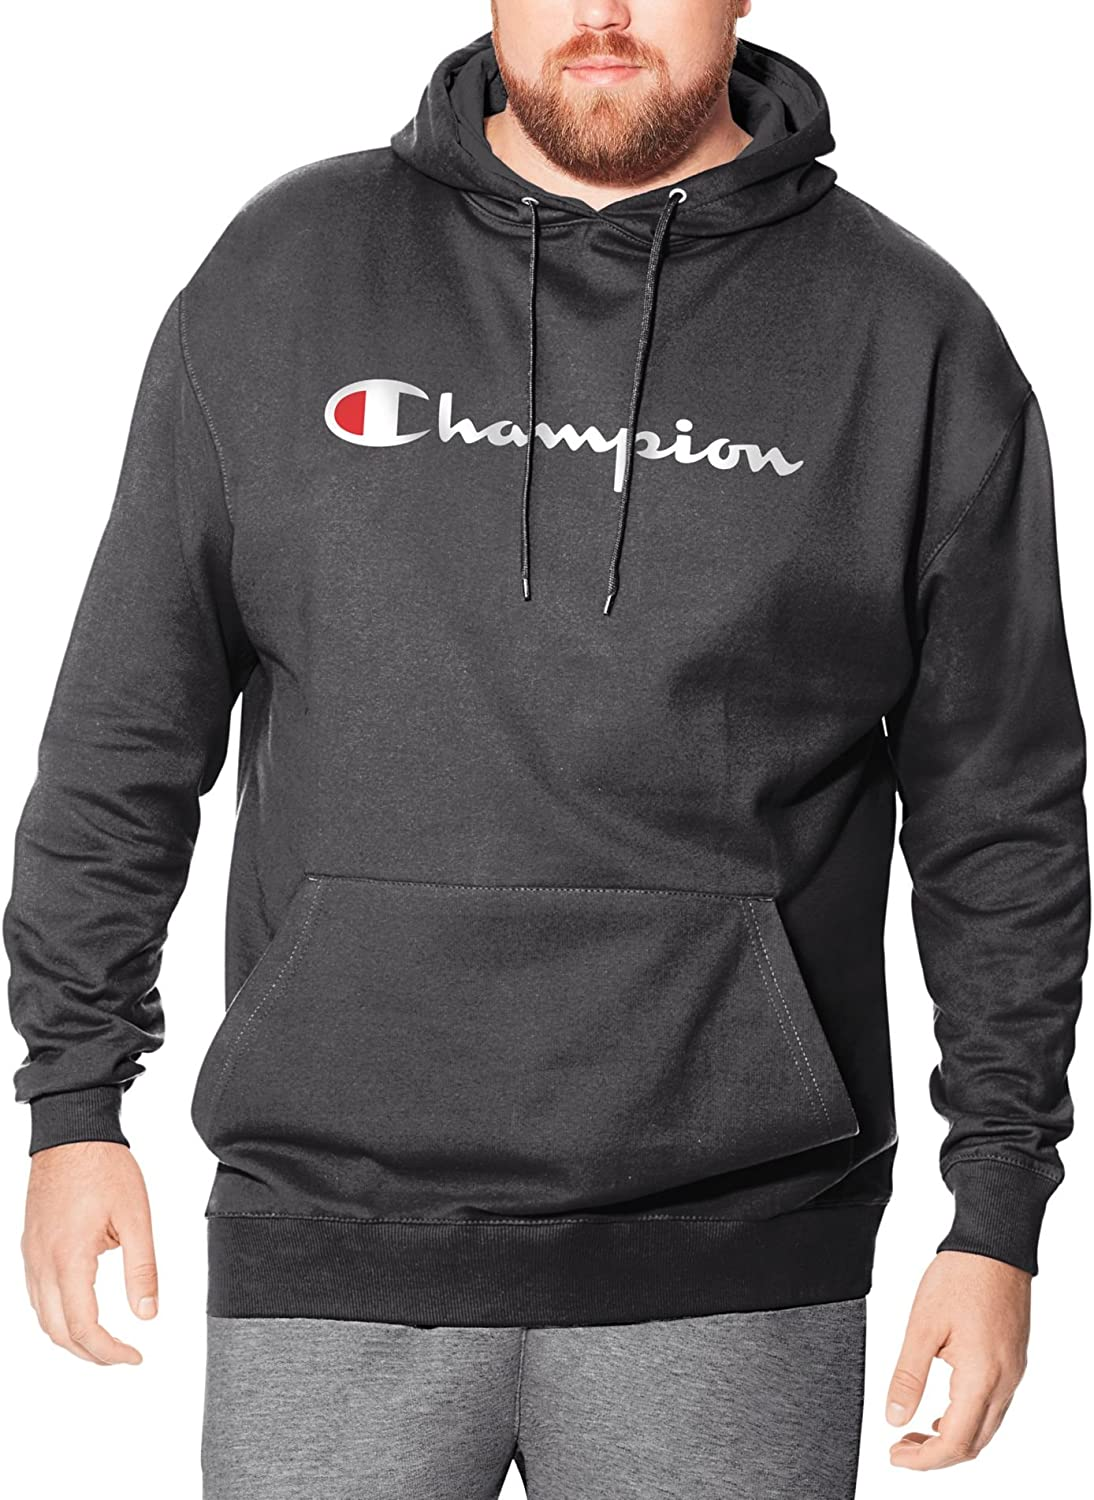 Champion Men's Big and Tall Performance Pullover Hoodie